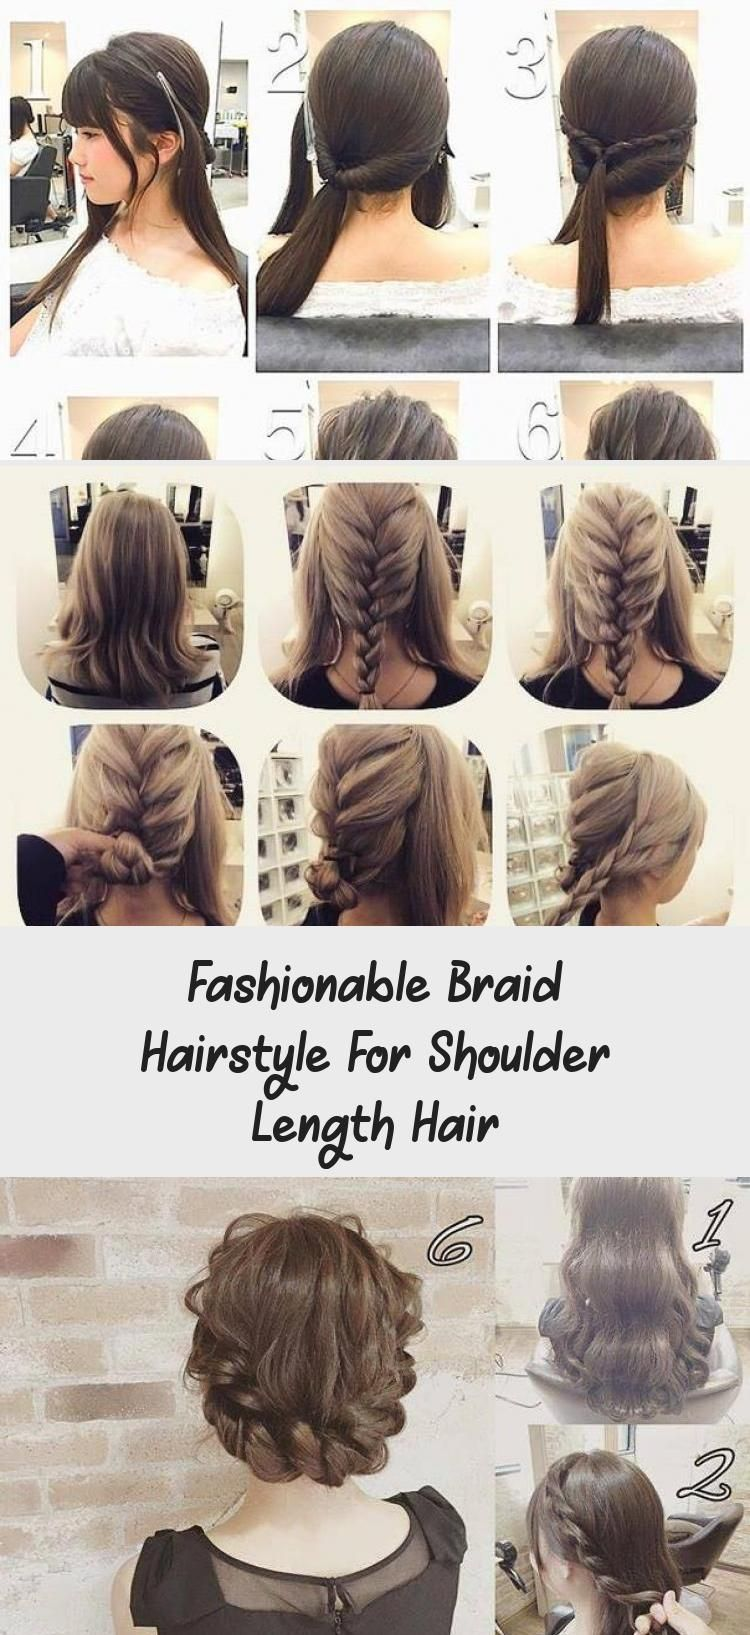 Fashionable Braid Hairstyle For Shoulder Length Hair Bighairtutorial Hairtutorialart Hairtutorialshoulderlen Hair Lengths Shoulder Length Hair Shoulder Hair